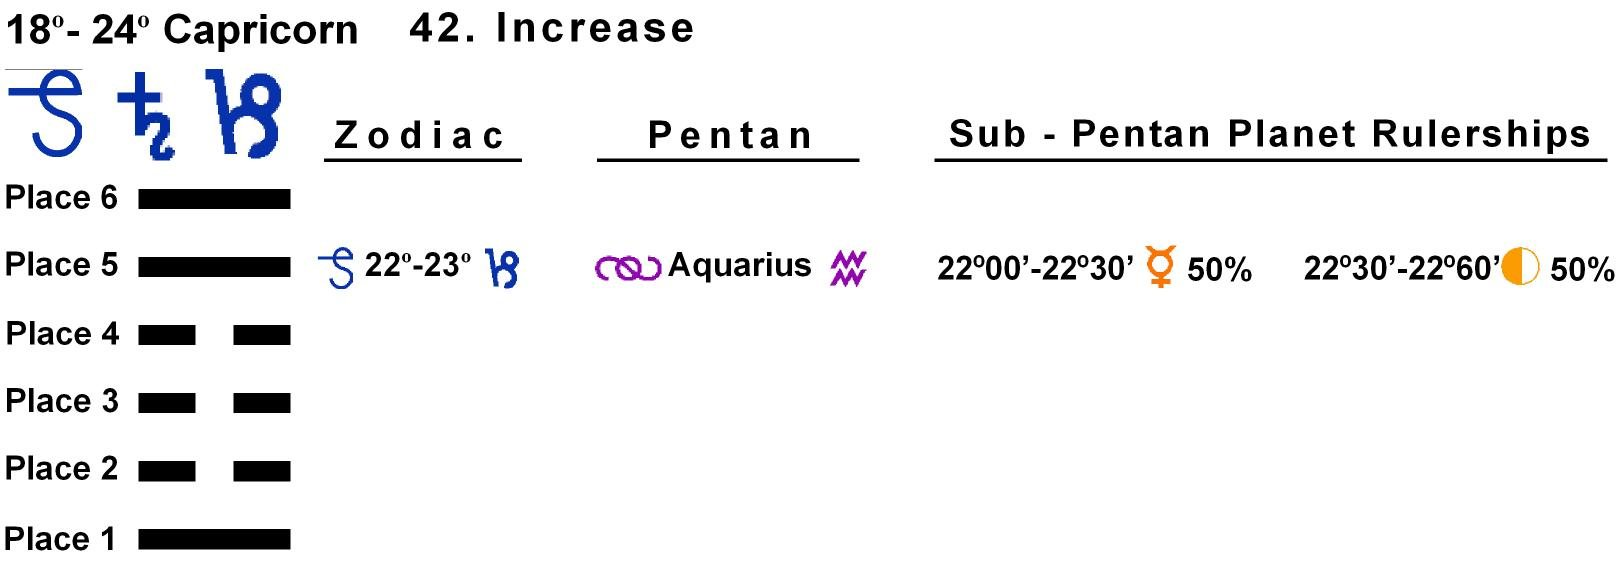 Pent-lines-10CP 22-23 Hx-42 Increase